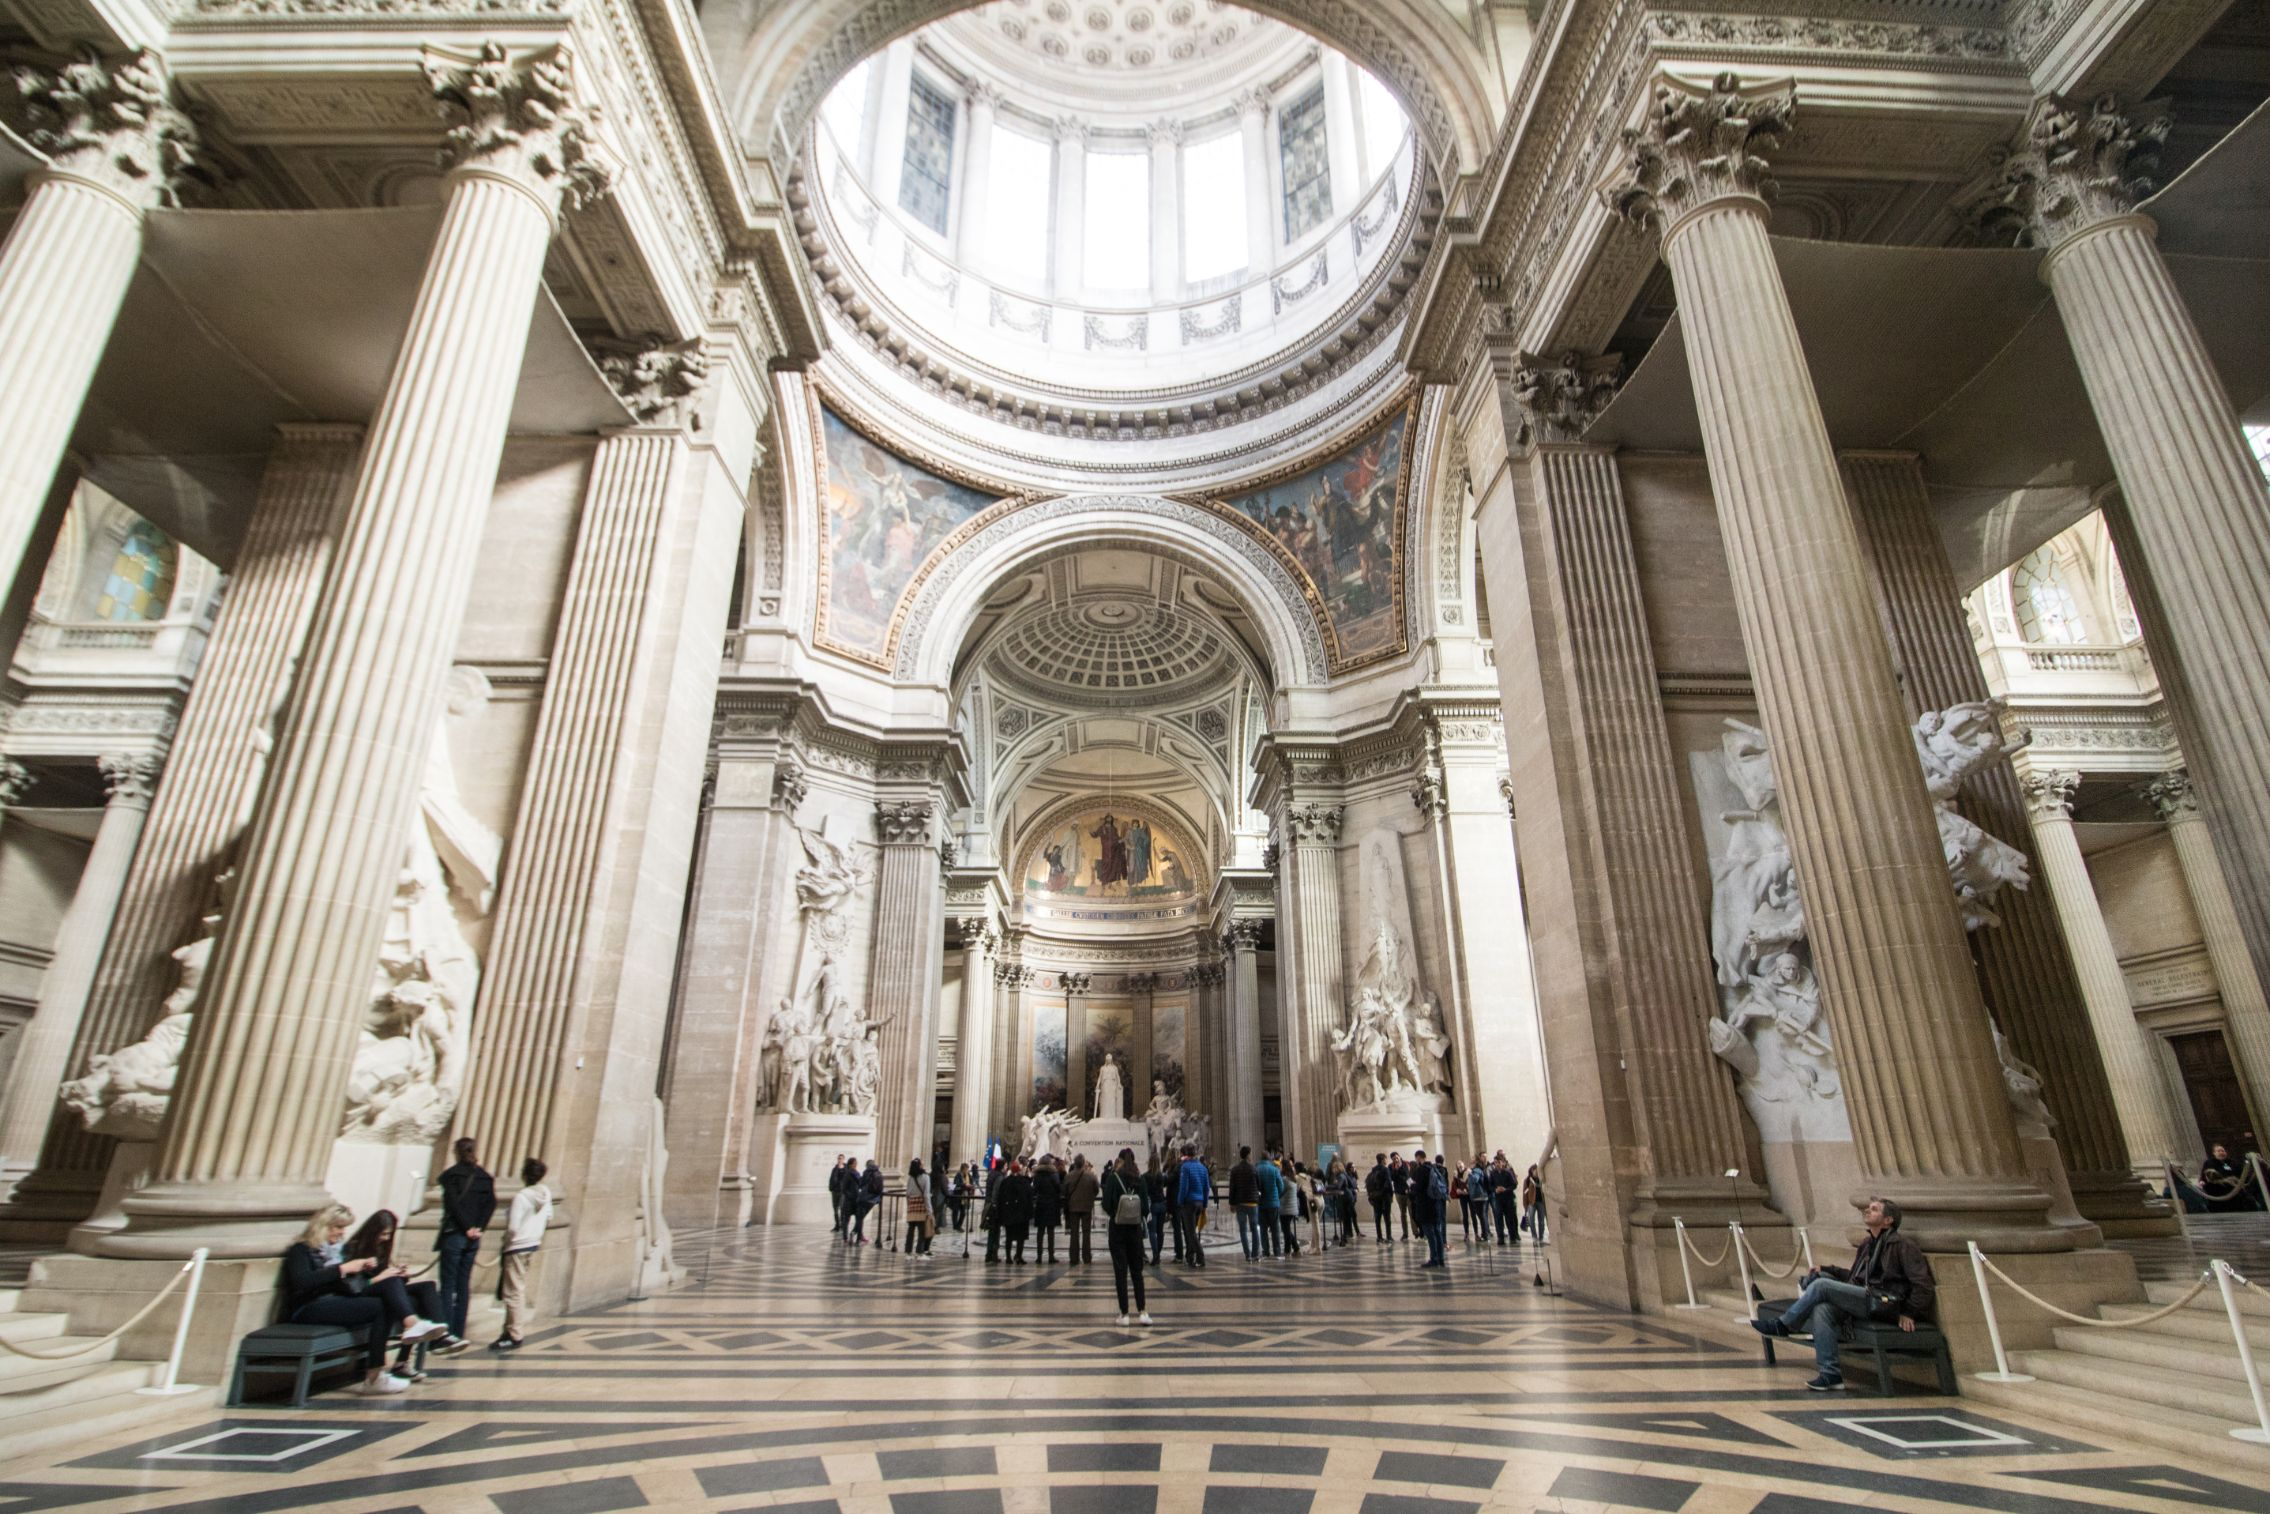 Pantheon Paris. The interior of a historic church building with a dome in the Latin Quarter.